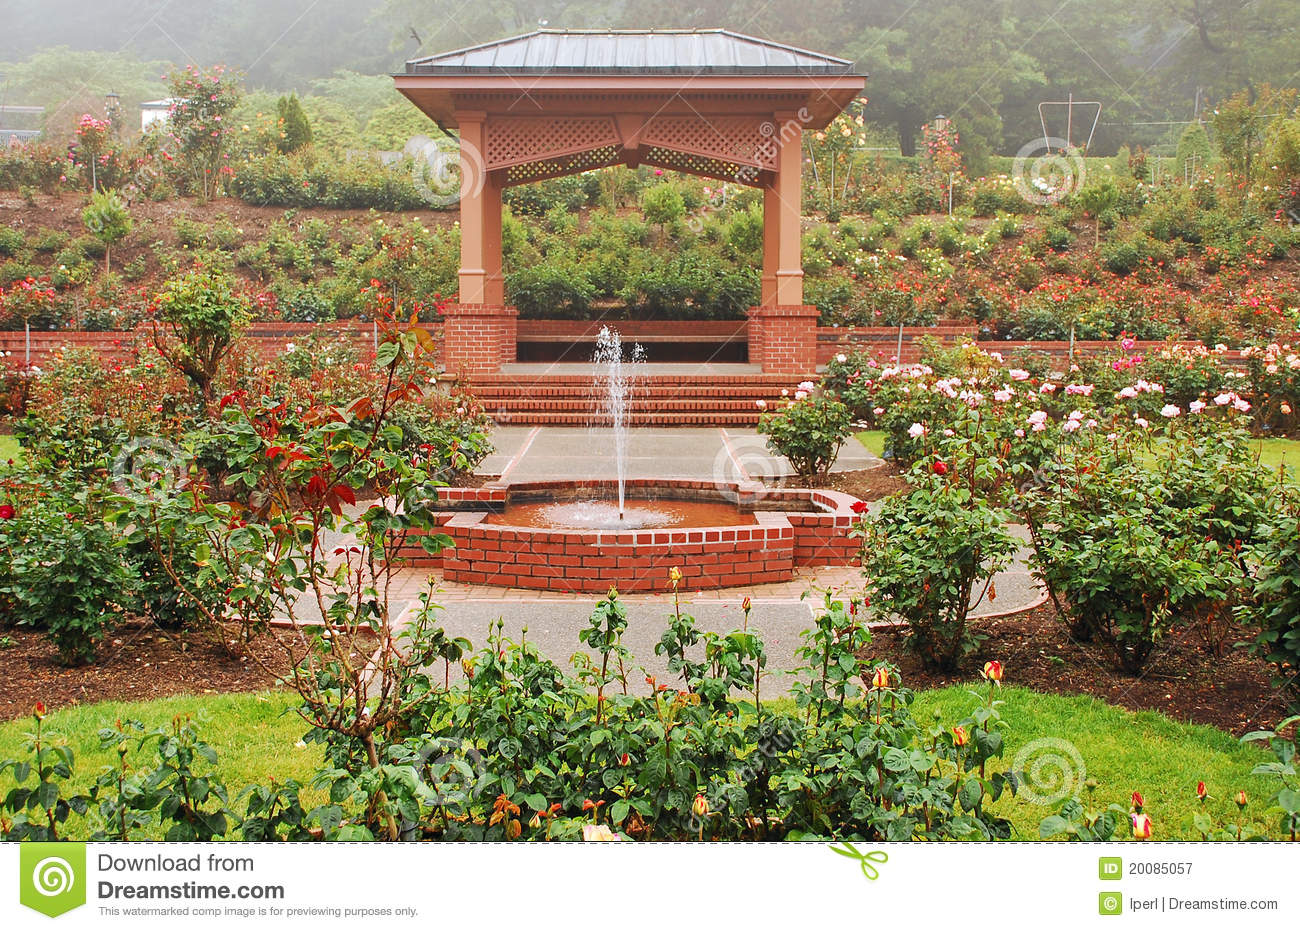 Gazebo Do Jardim De Rosas Fotografia de Stock Royalty Free ...